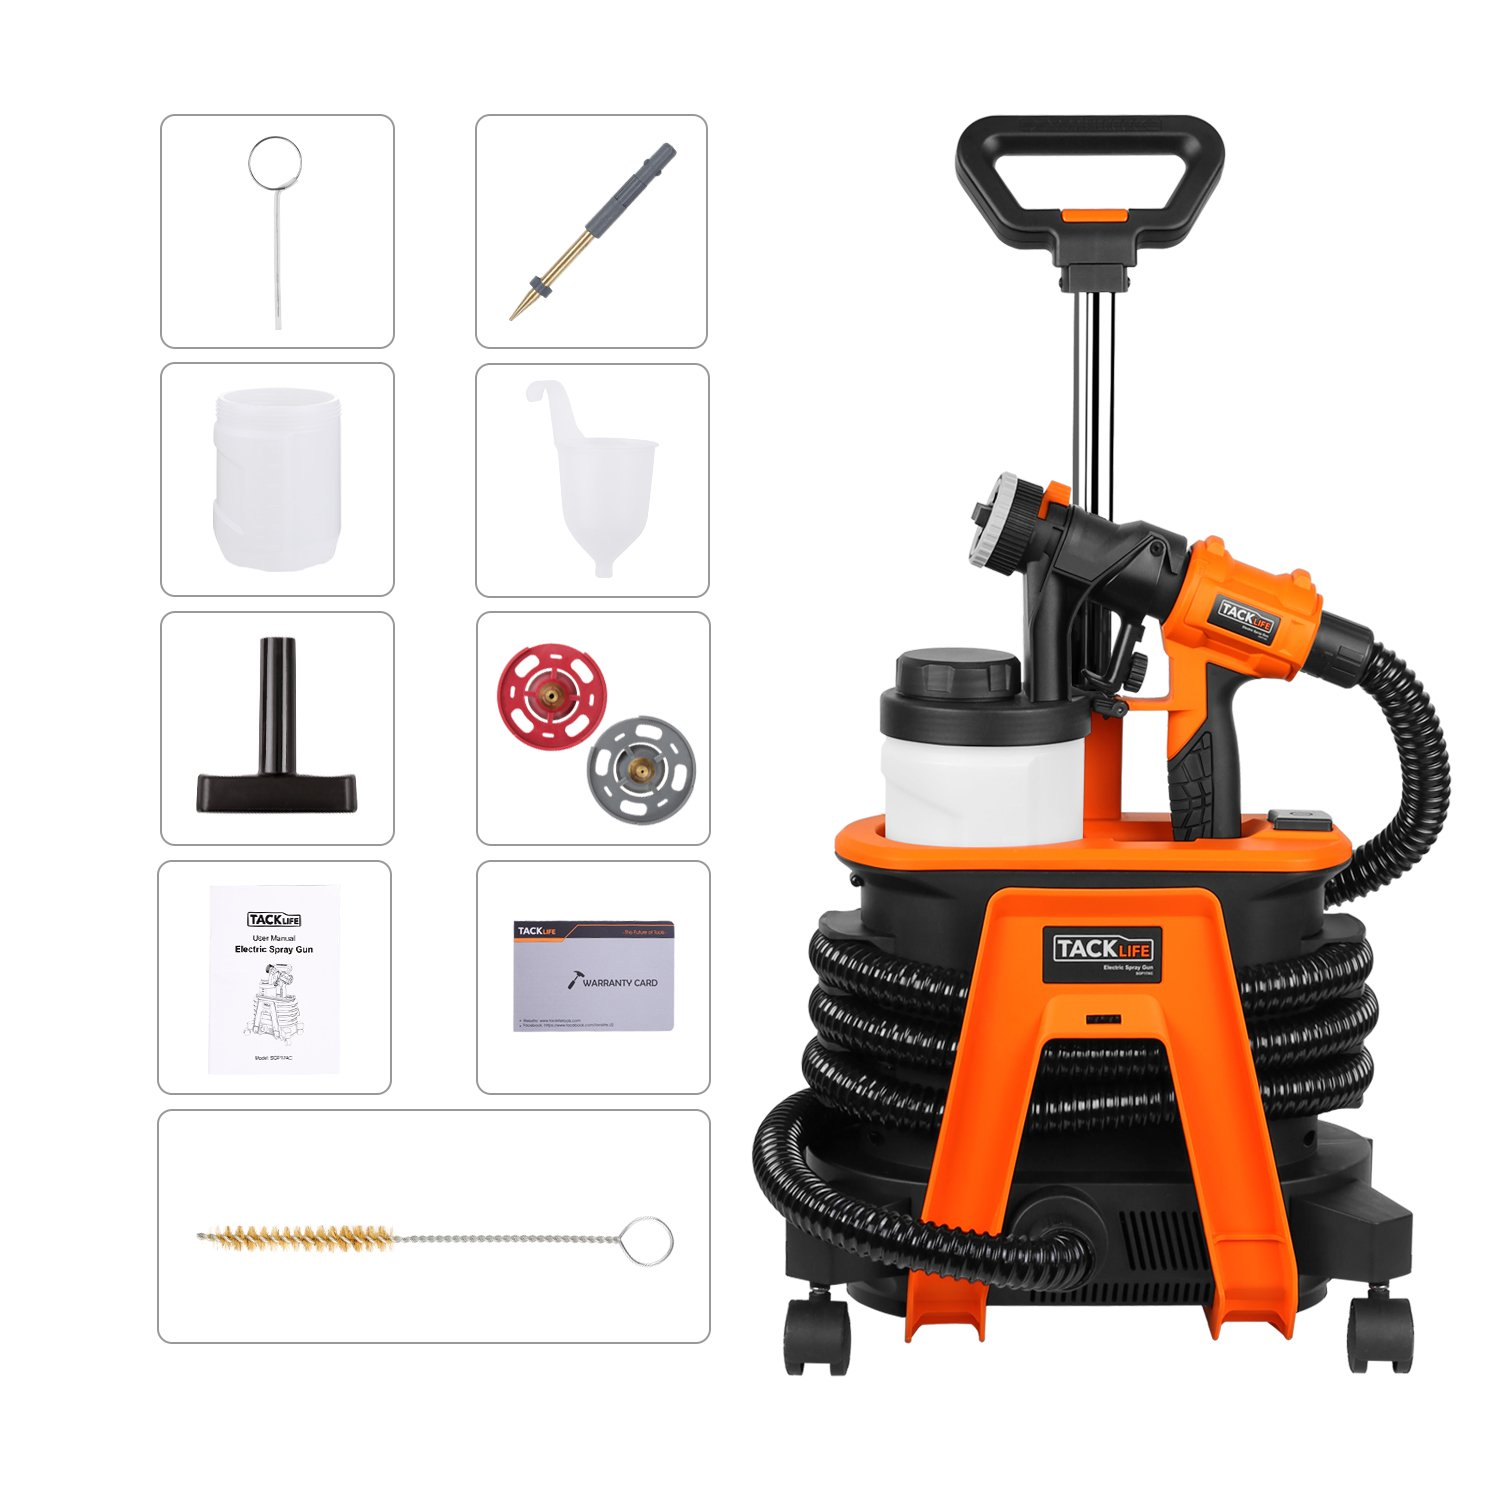 TACKLIFE Paint Sprayer, 800W High Power HVLP Home Electric Spray Gun with 3 Nozzle Sizes, 3 Patterns, 1100ml/Min,  Adjustable Valve Knob, Easy Spraying and Cleaning